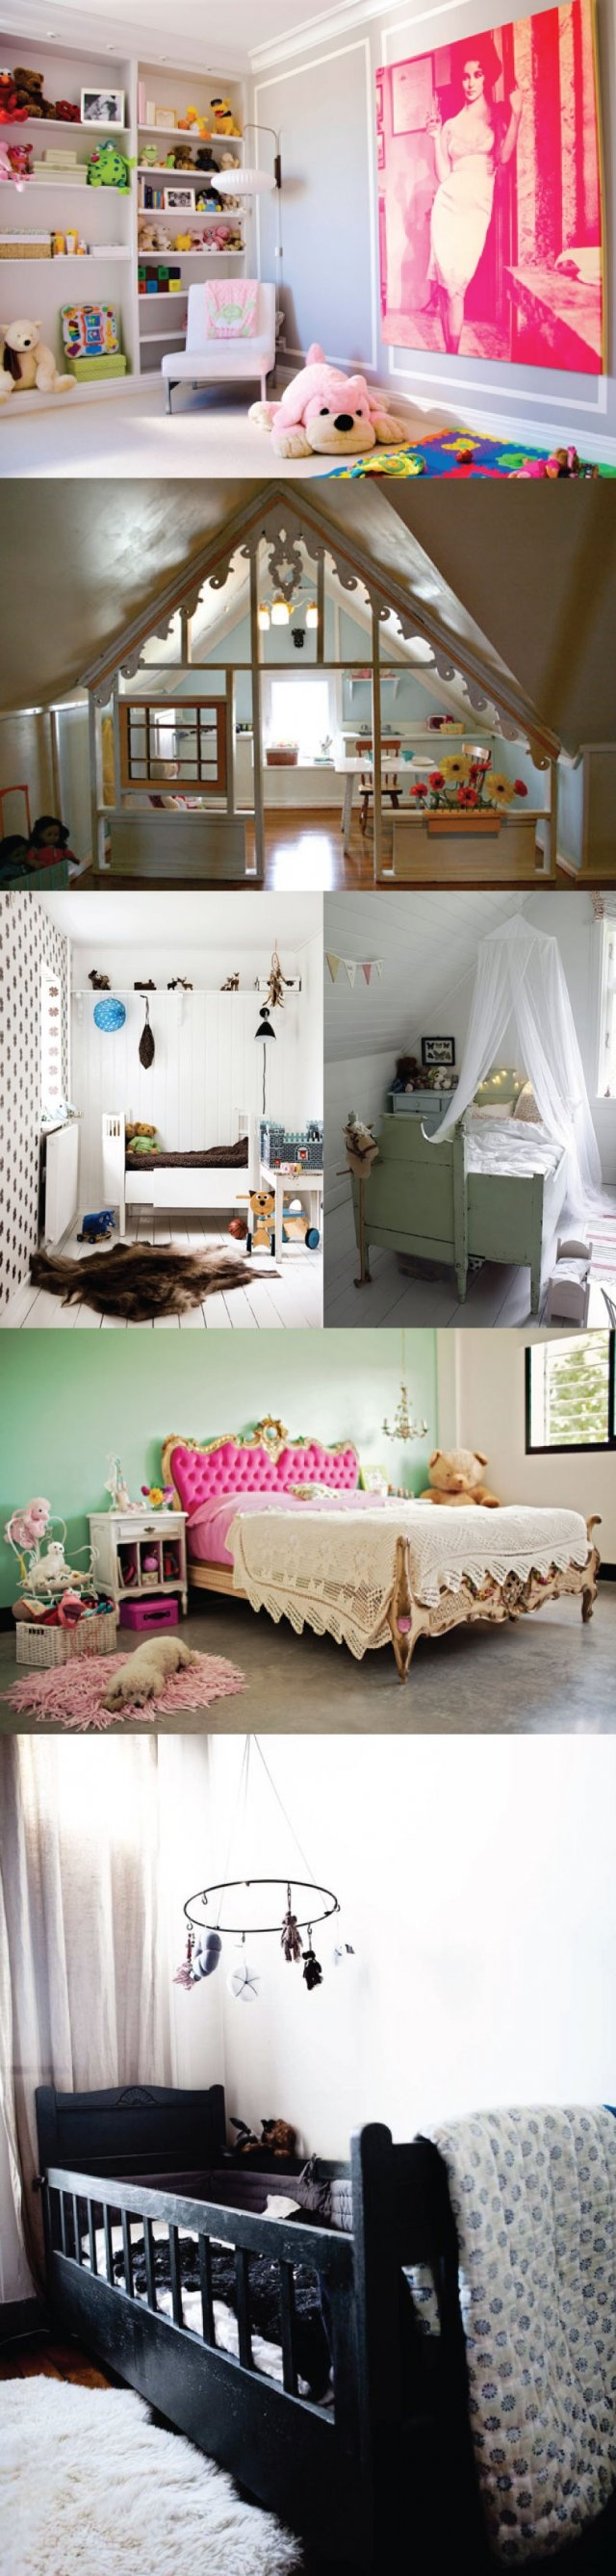 21 best baby product design images on Pinterest | Child room, Play ...